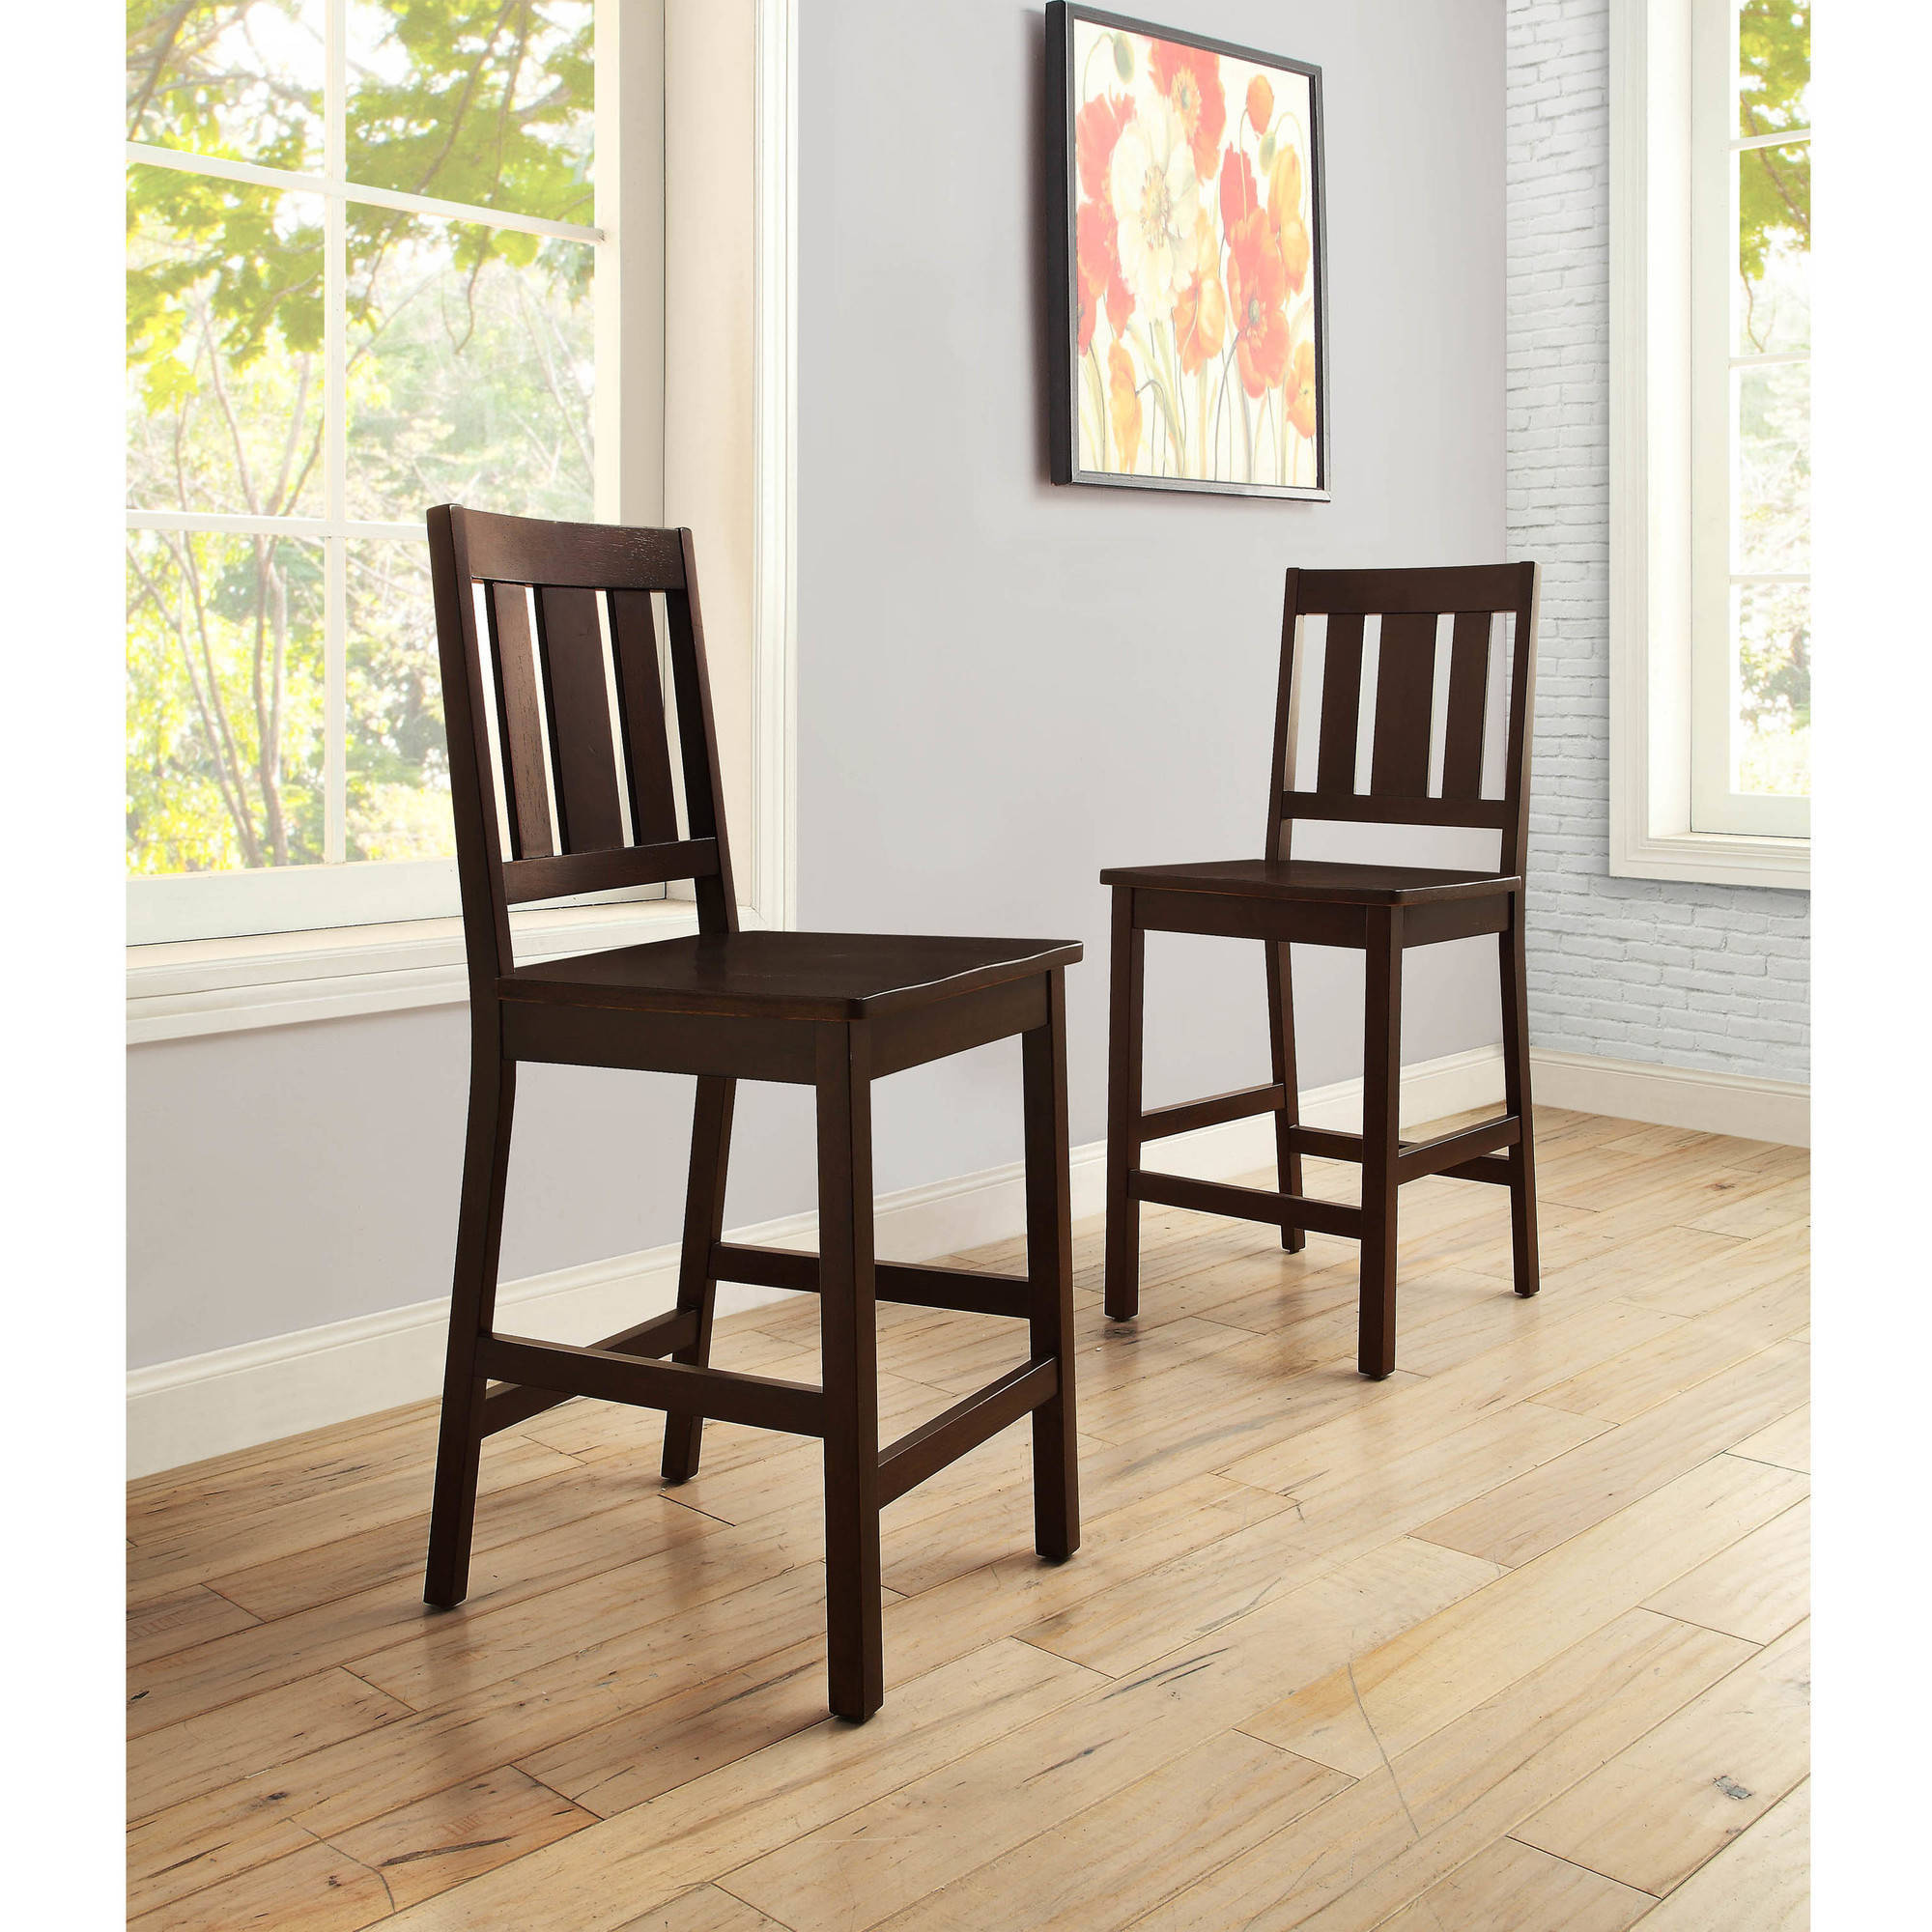 better homes and gardens bankston counter height stool set of 2 mocha